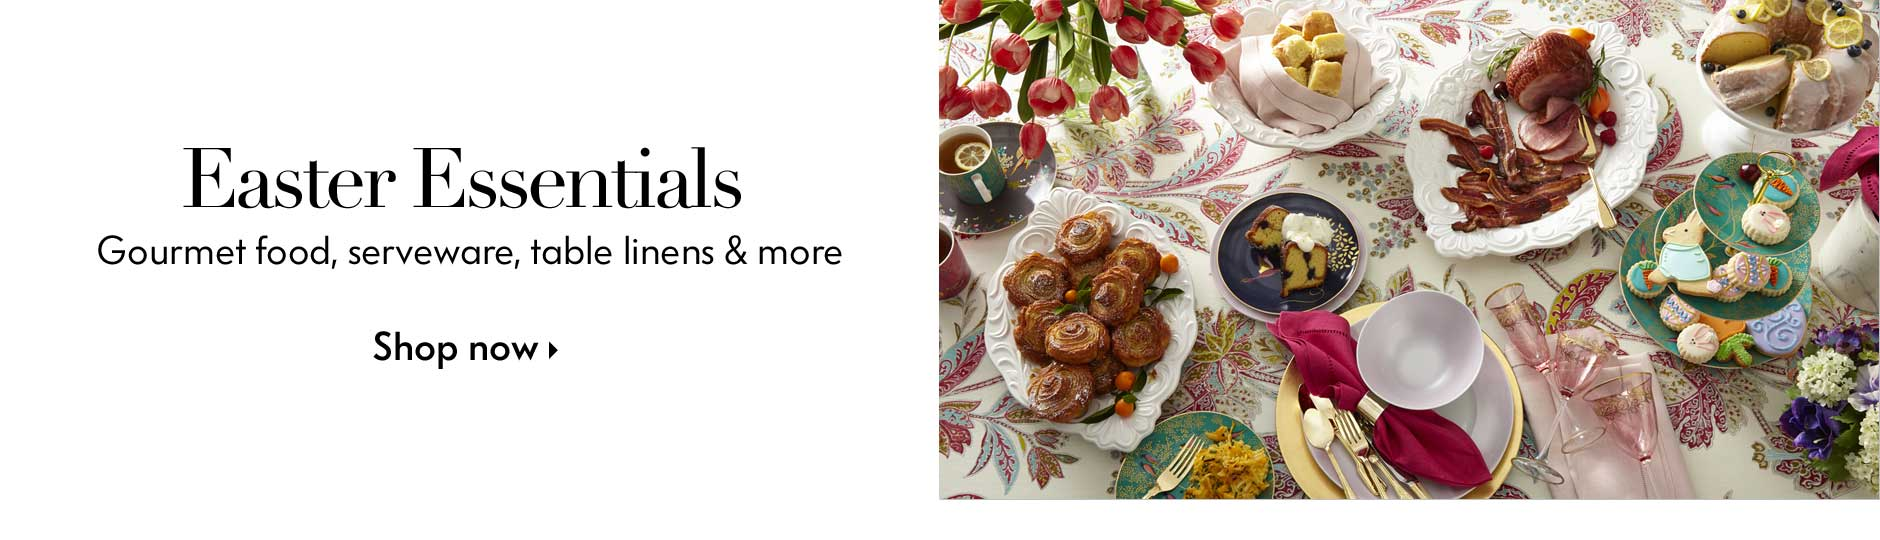 Gourmet food, serveware, table linens & more for Easter